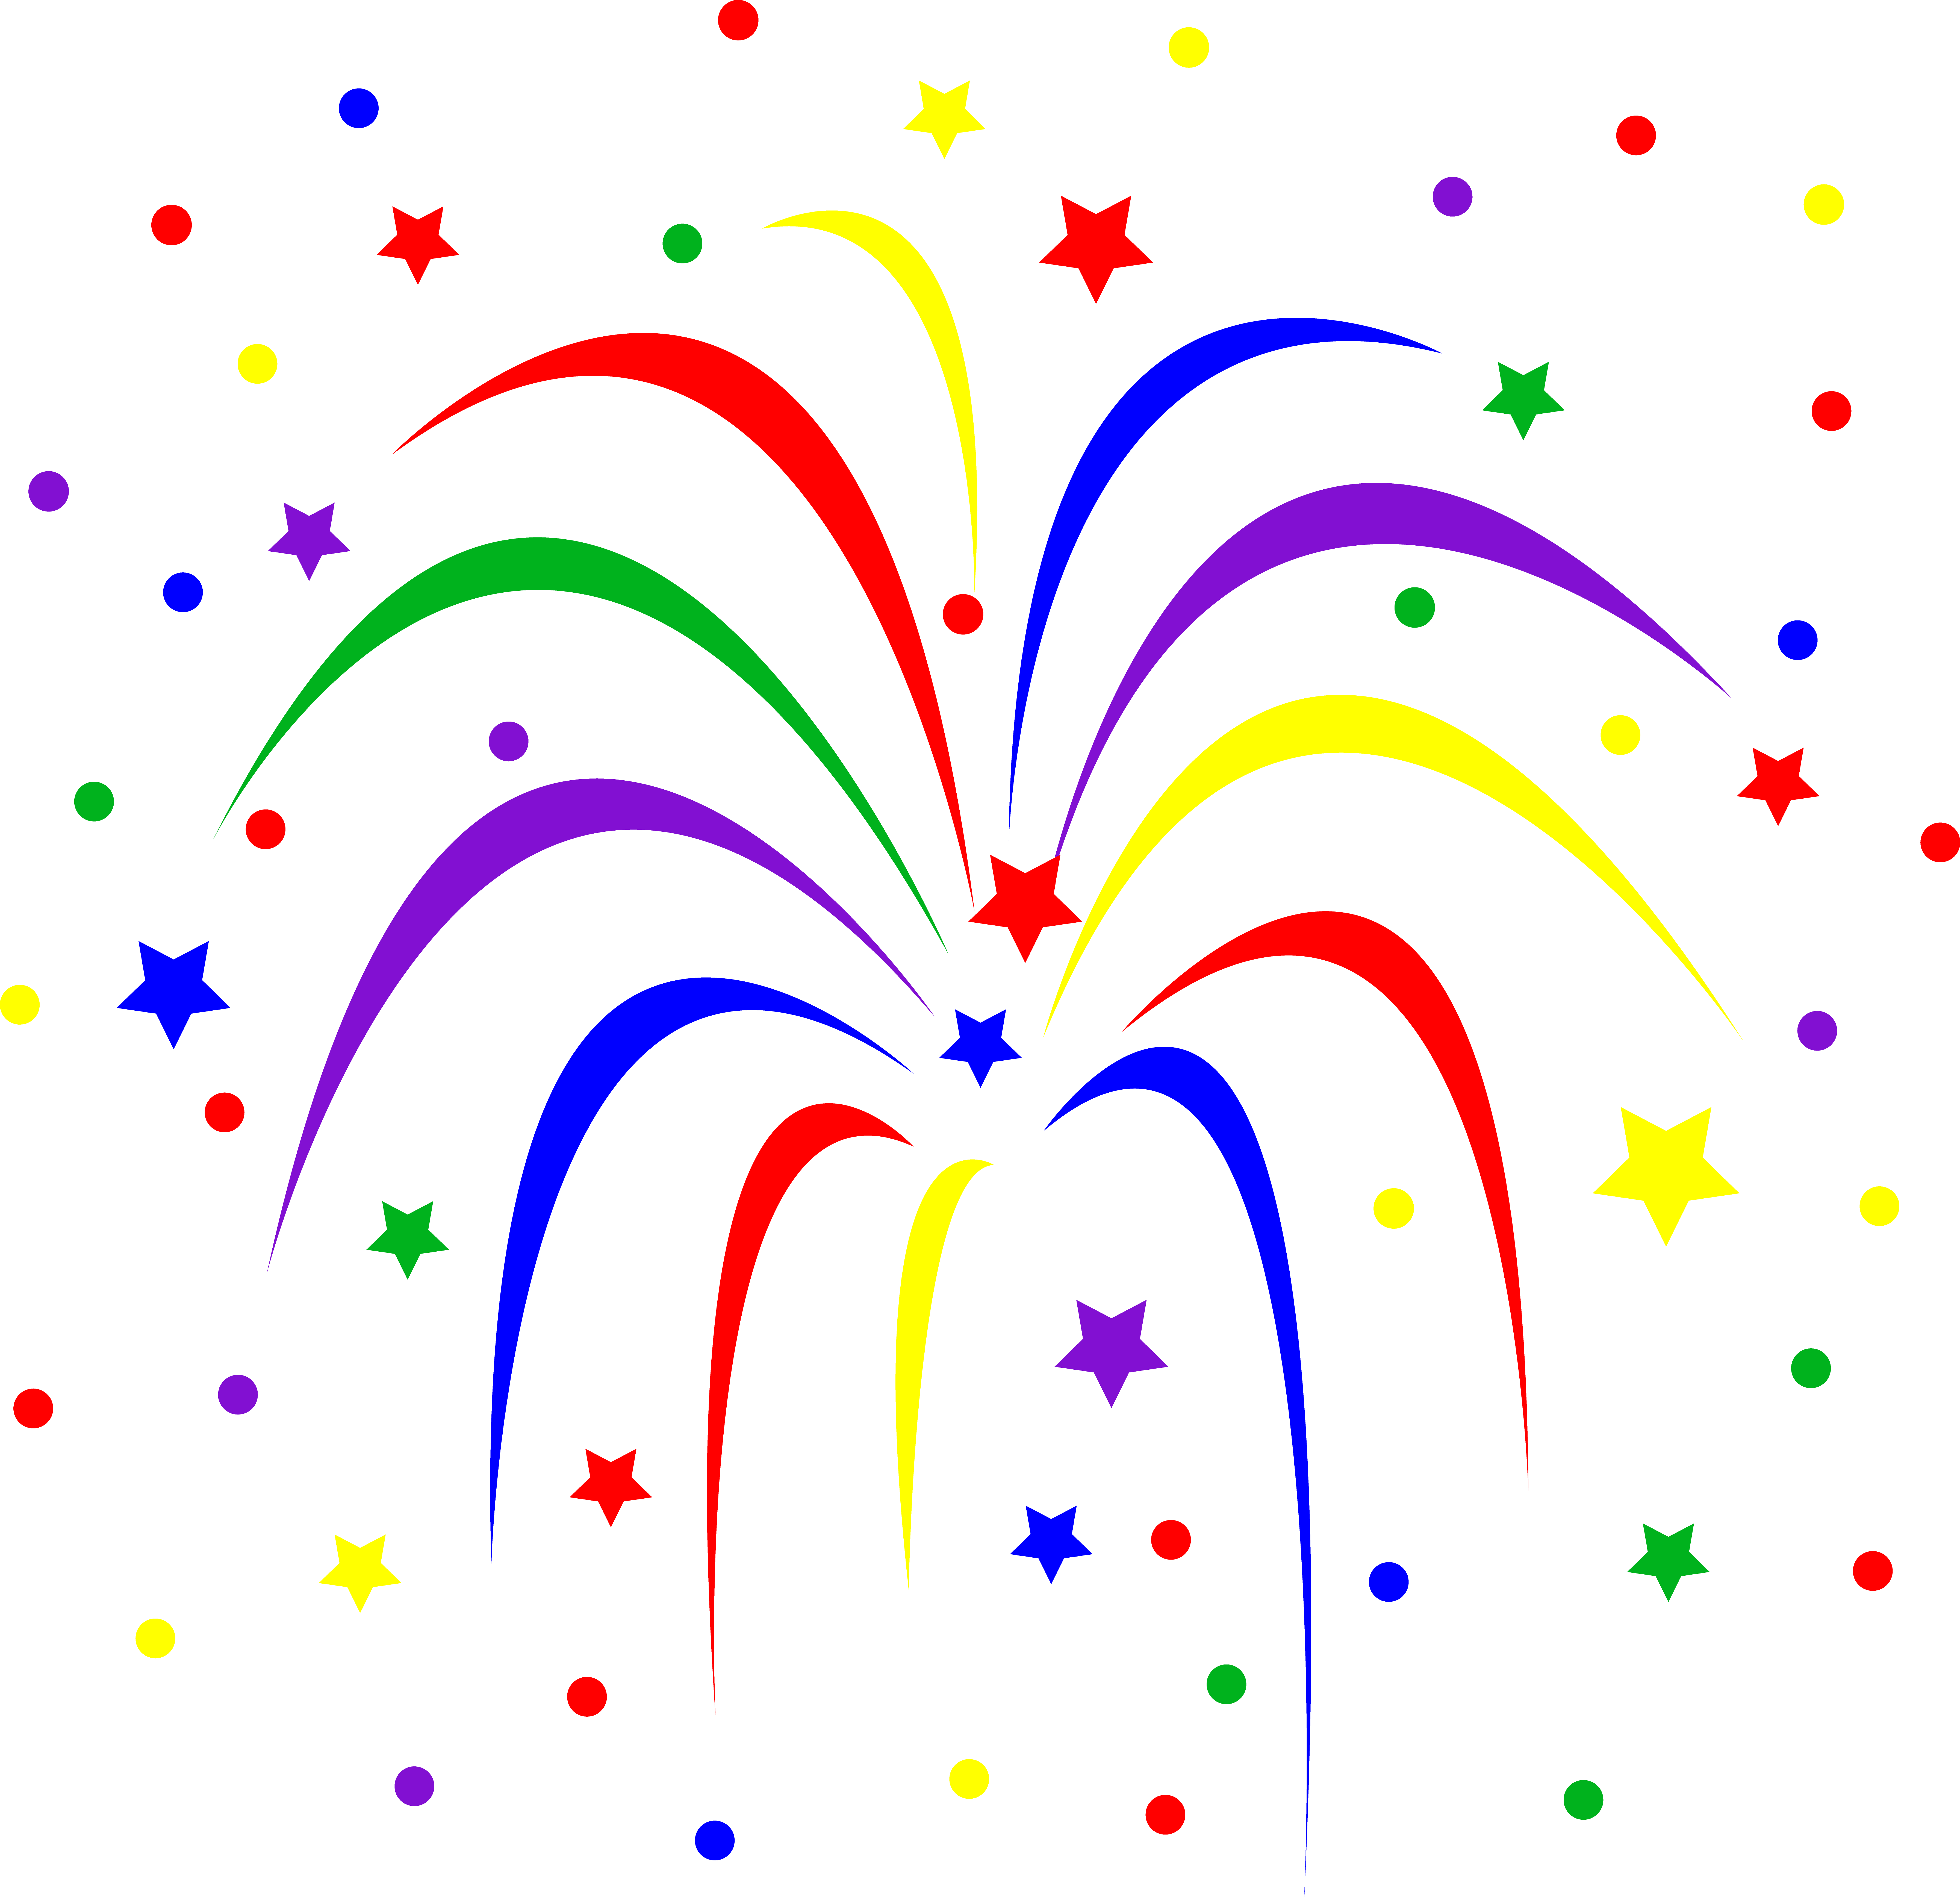 4th of july fireworks border clipart panda free clipart images rh clipartpanda com happy fourth of july fireworks clipart 4th of july fireworks clipart